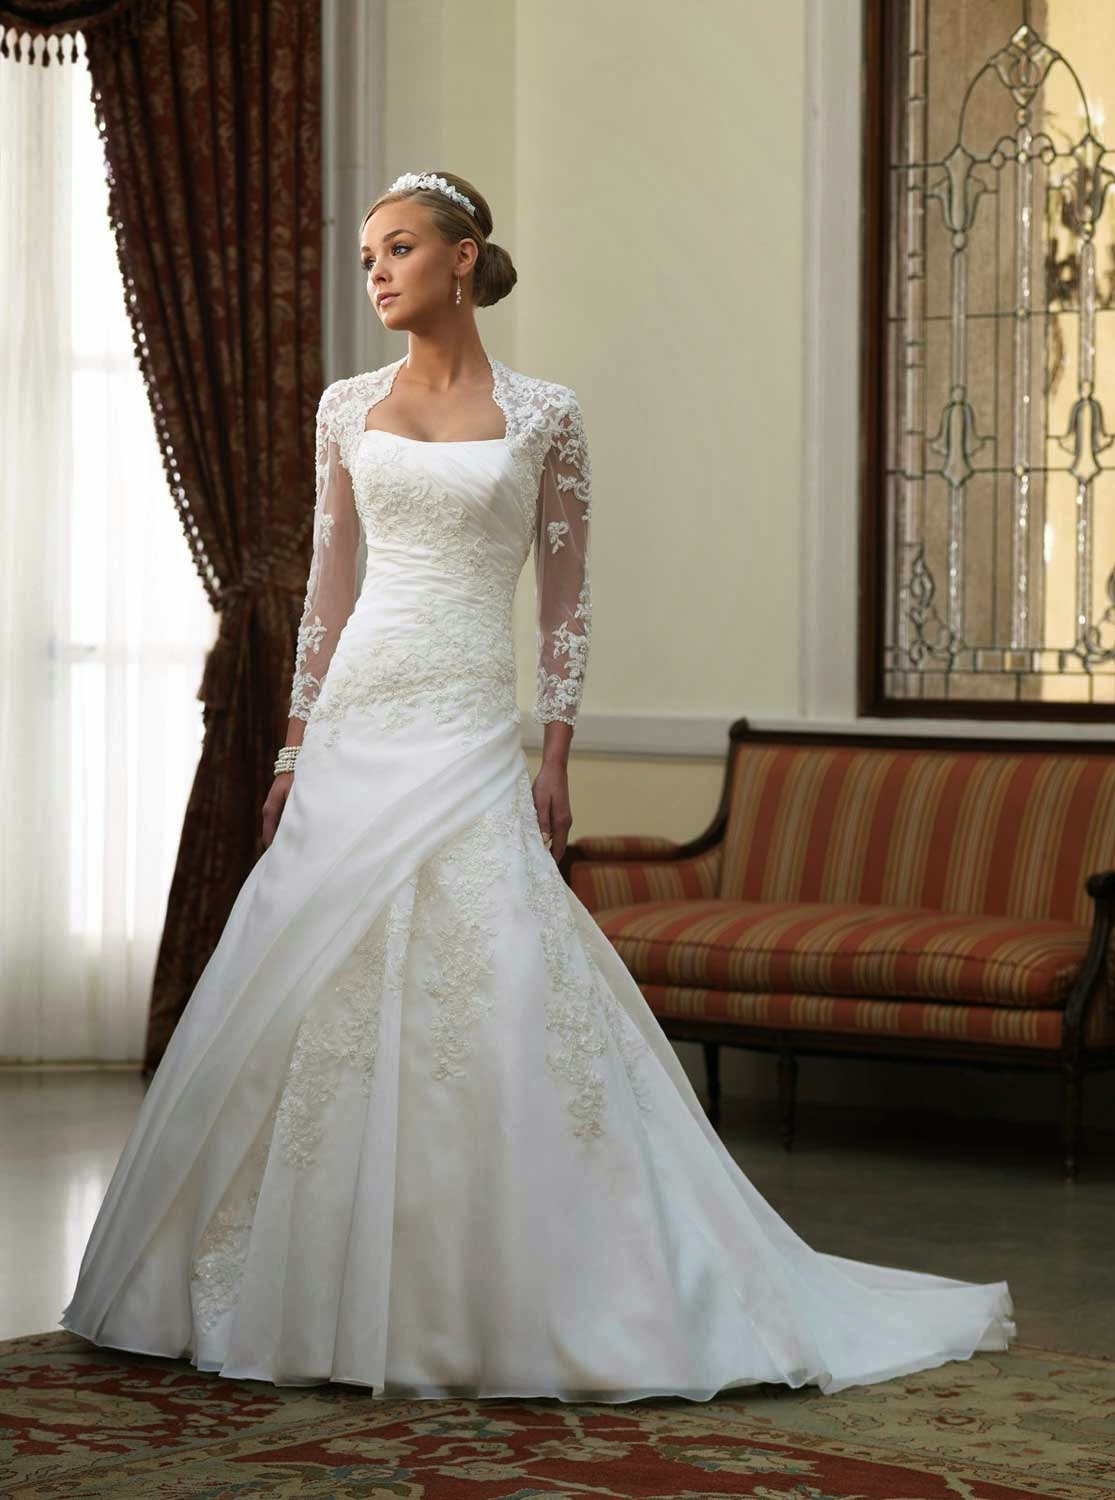 Lace Ball Gown Wedding Dresses Ideas Photos